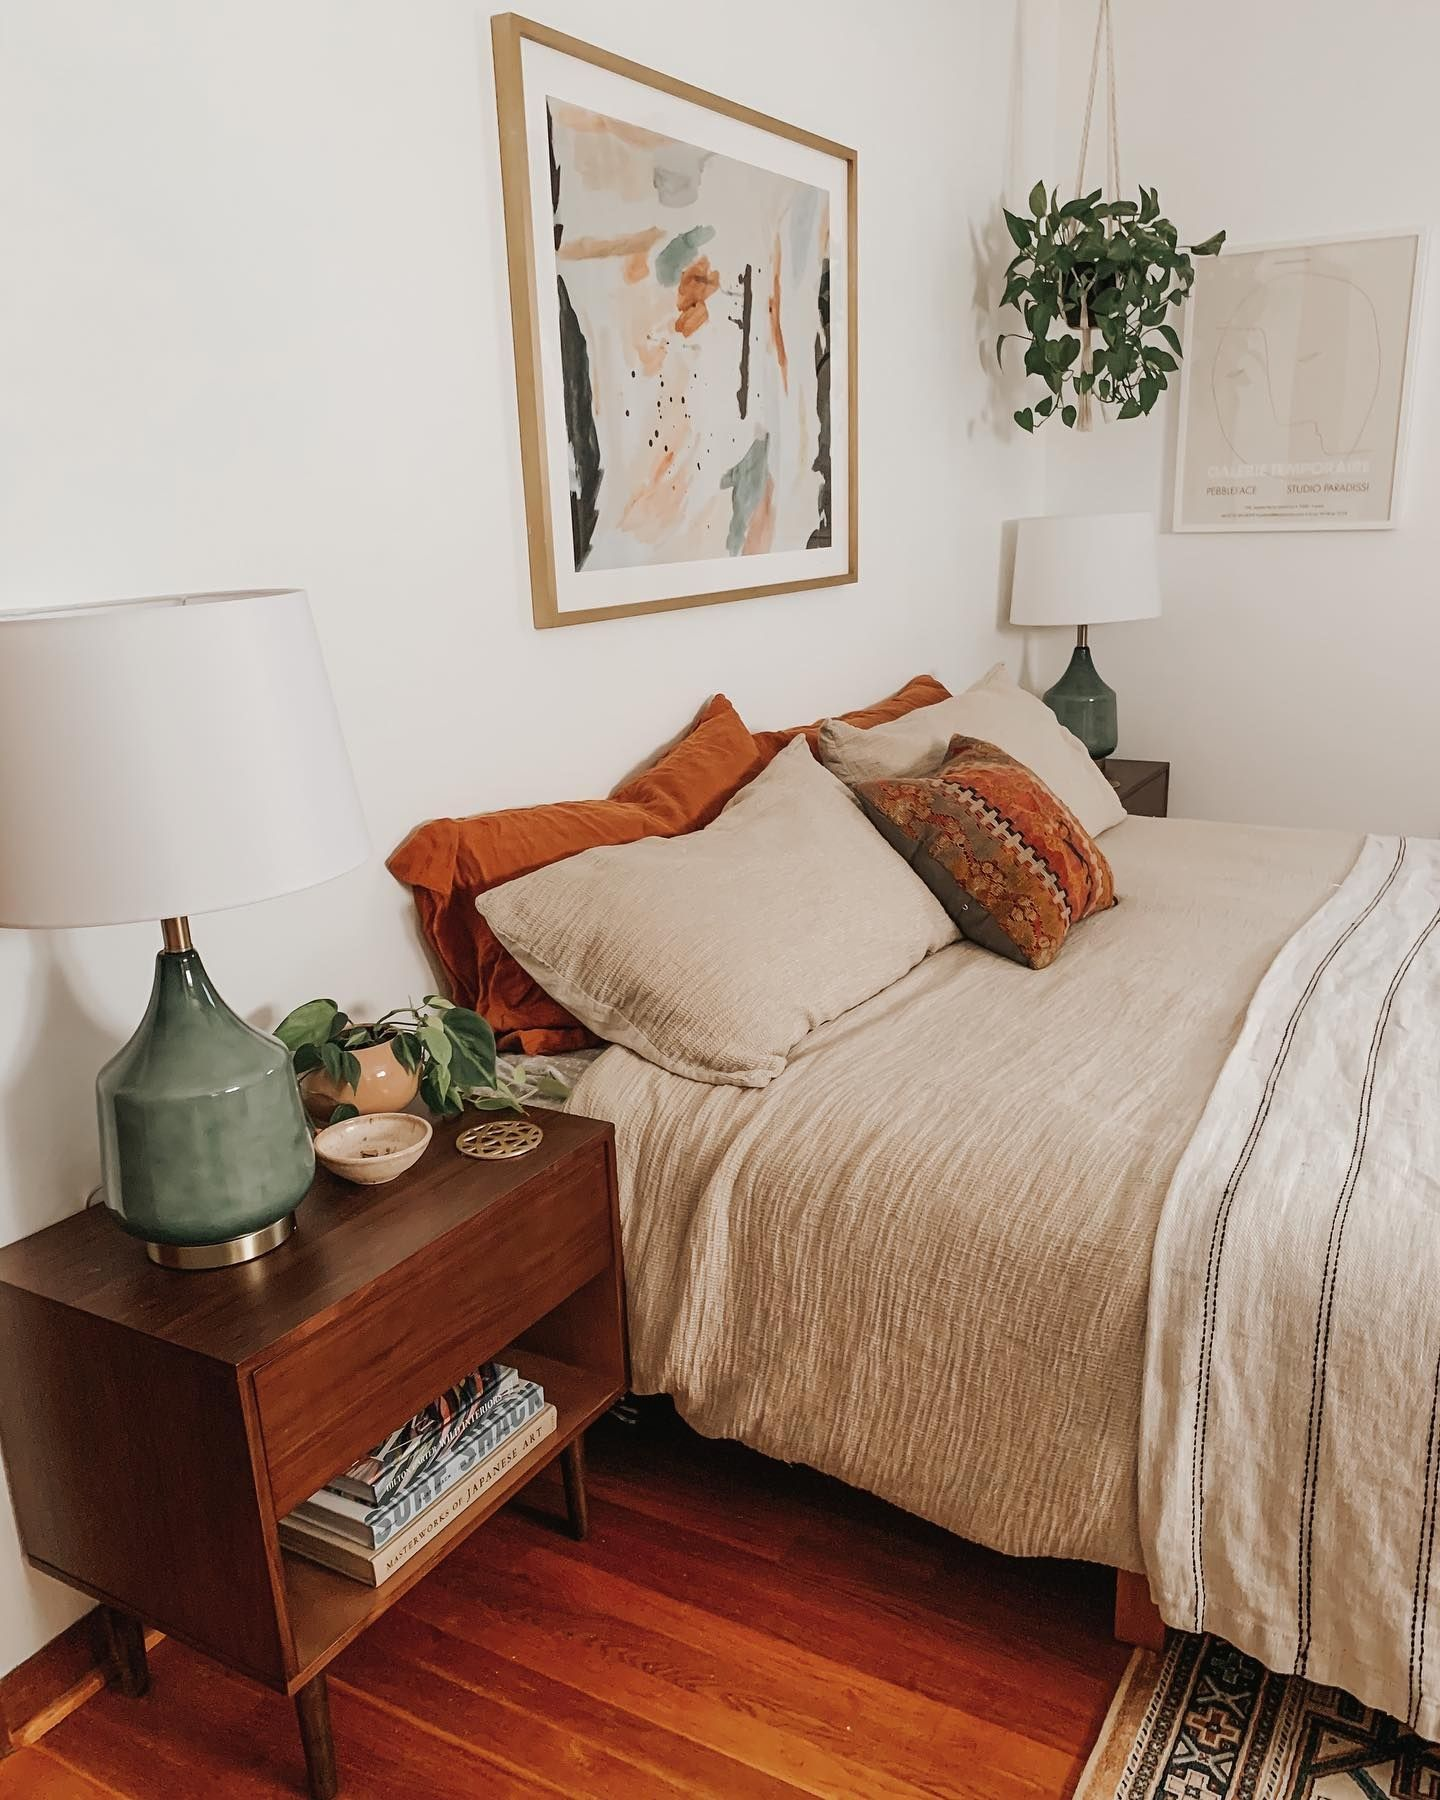 41+ Emerson bedroom furniture ideas in 2021